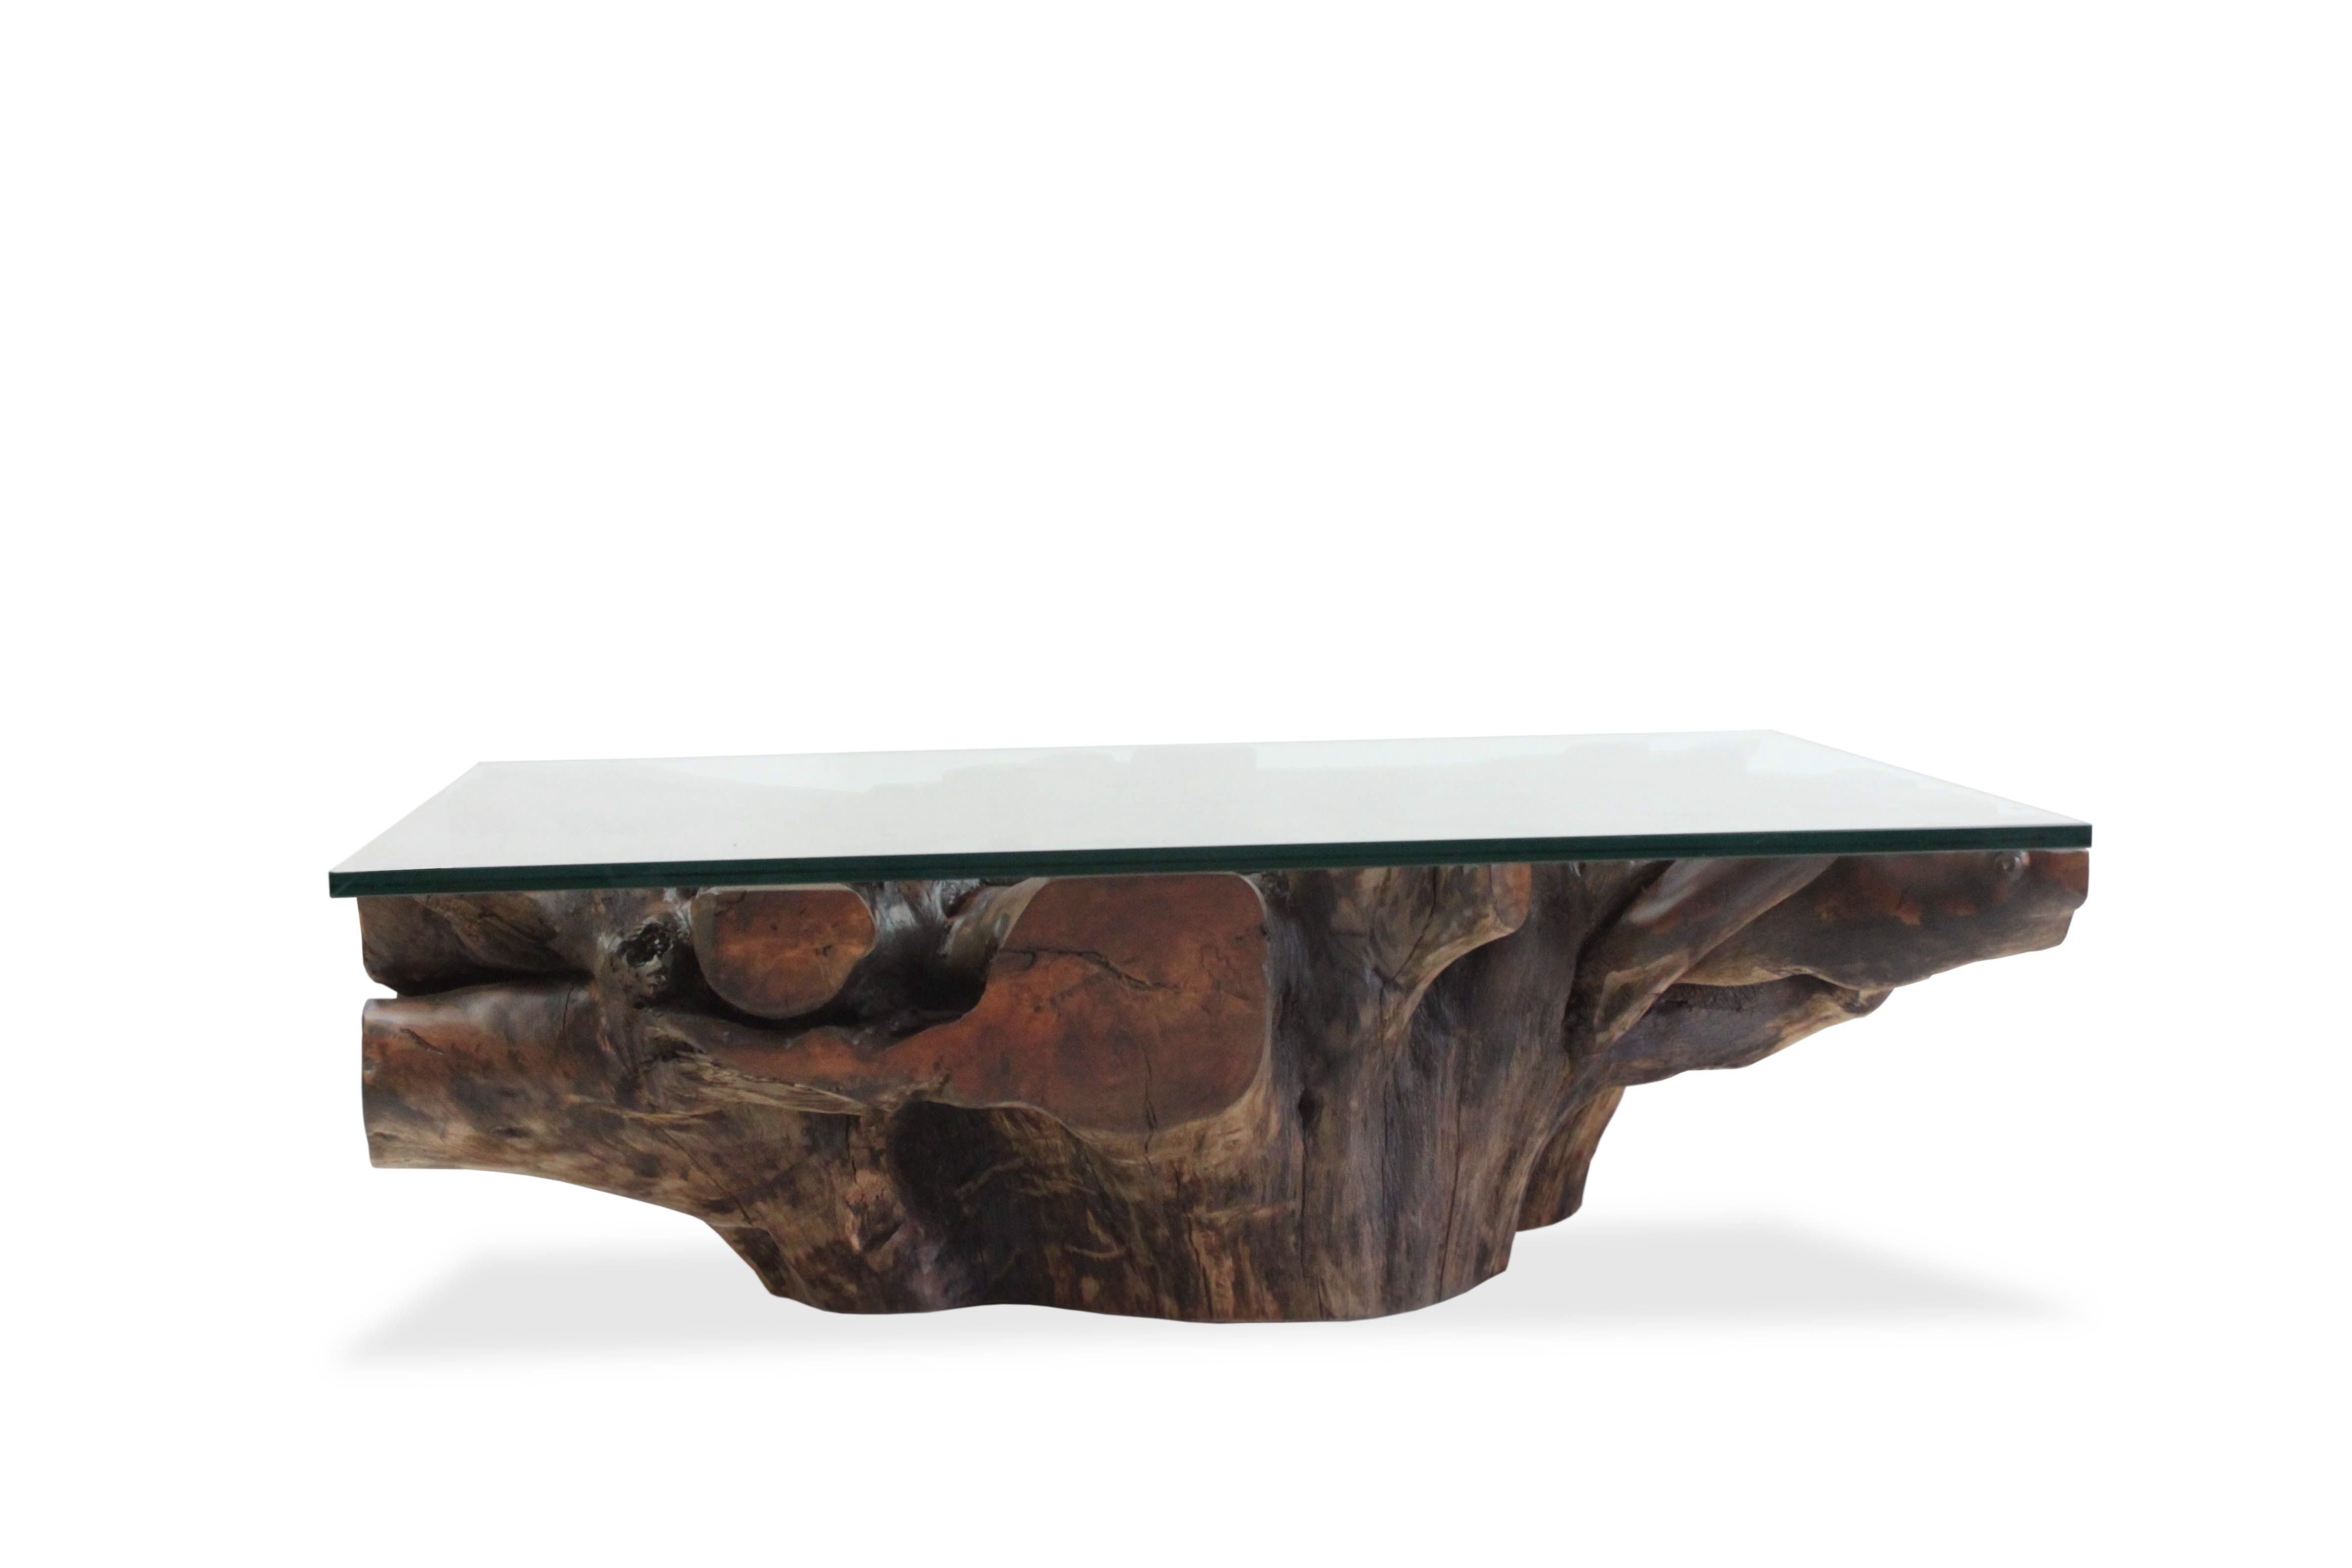 Glass Top Mango Root Coffee Table Hand Crafted By Rotsen Furniture With Salvaged Wood Furniture Desig Raw Wood Coffee Table Coffee Table Wood Coffee Table [ 3168 x 4752 Pixel ]